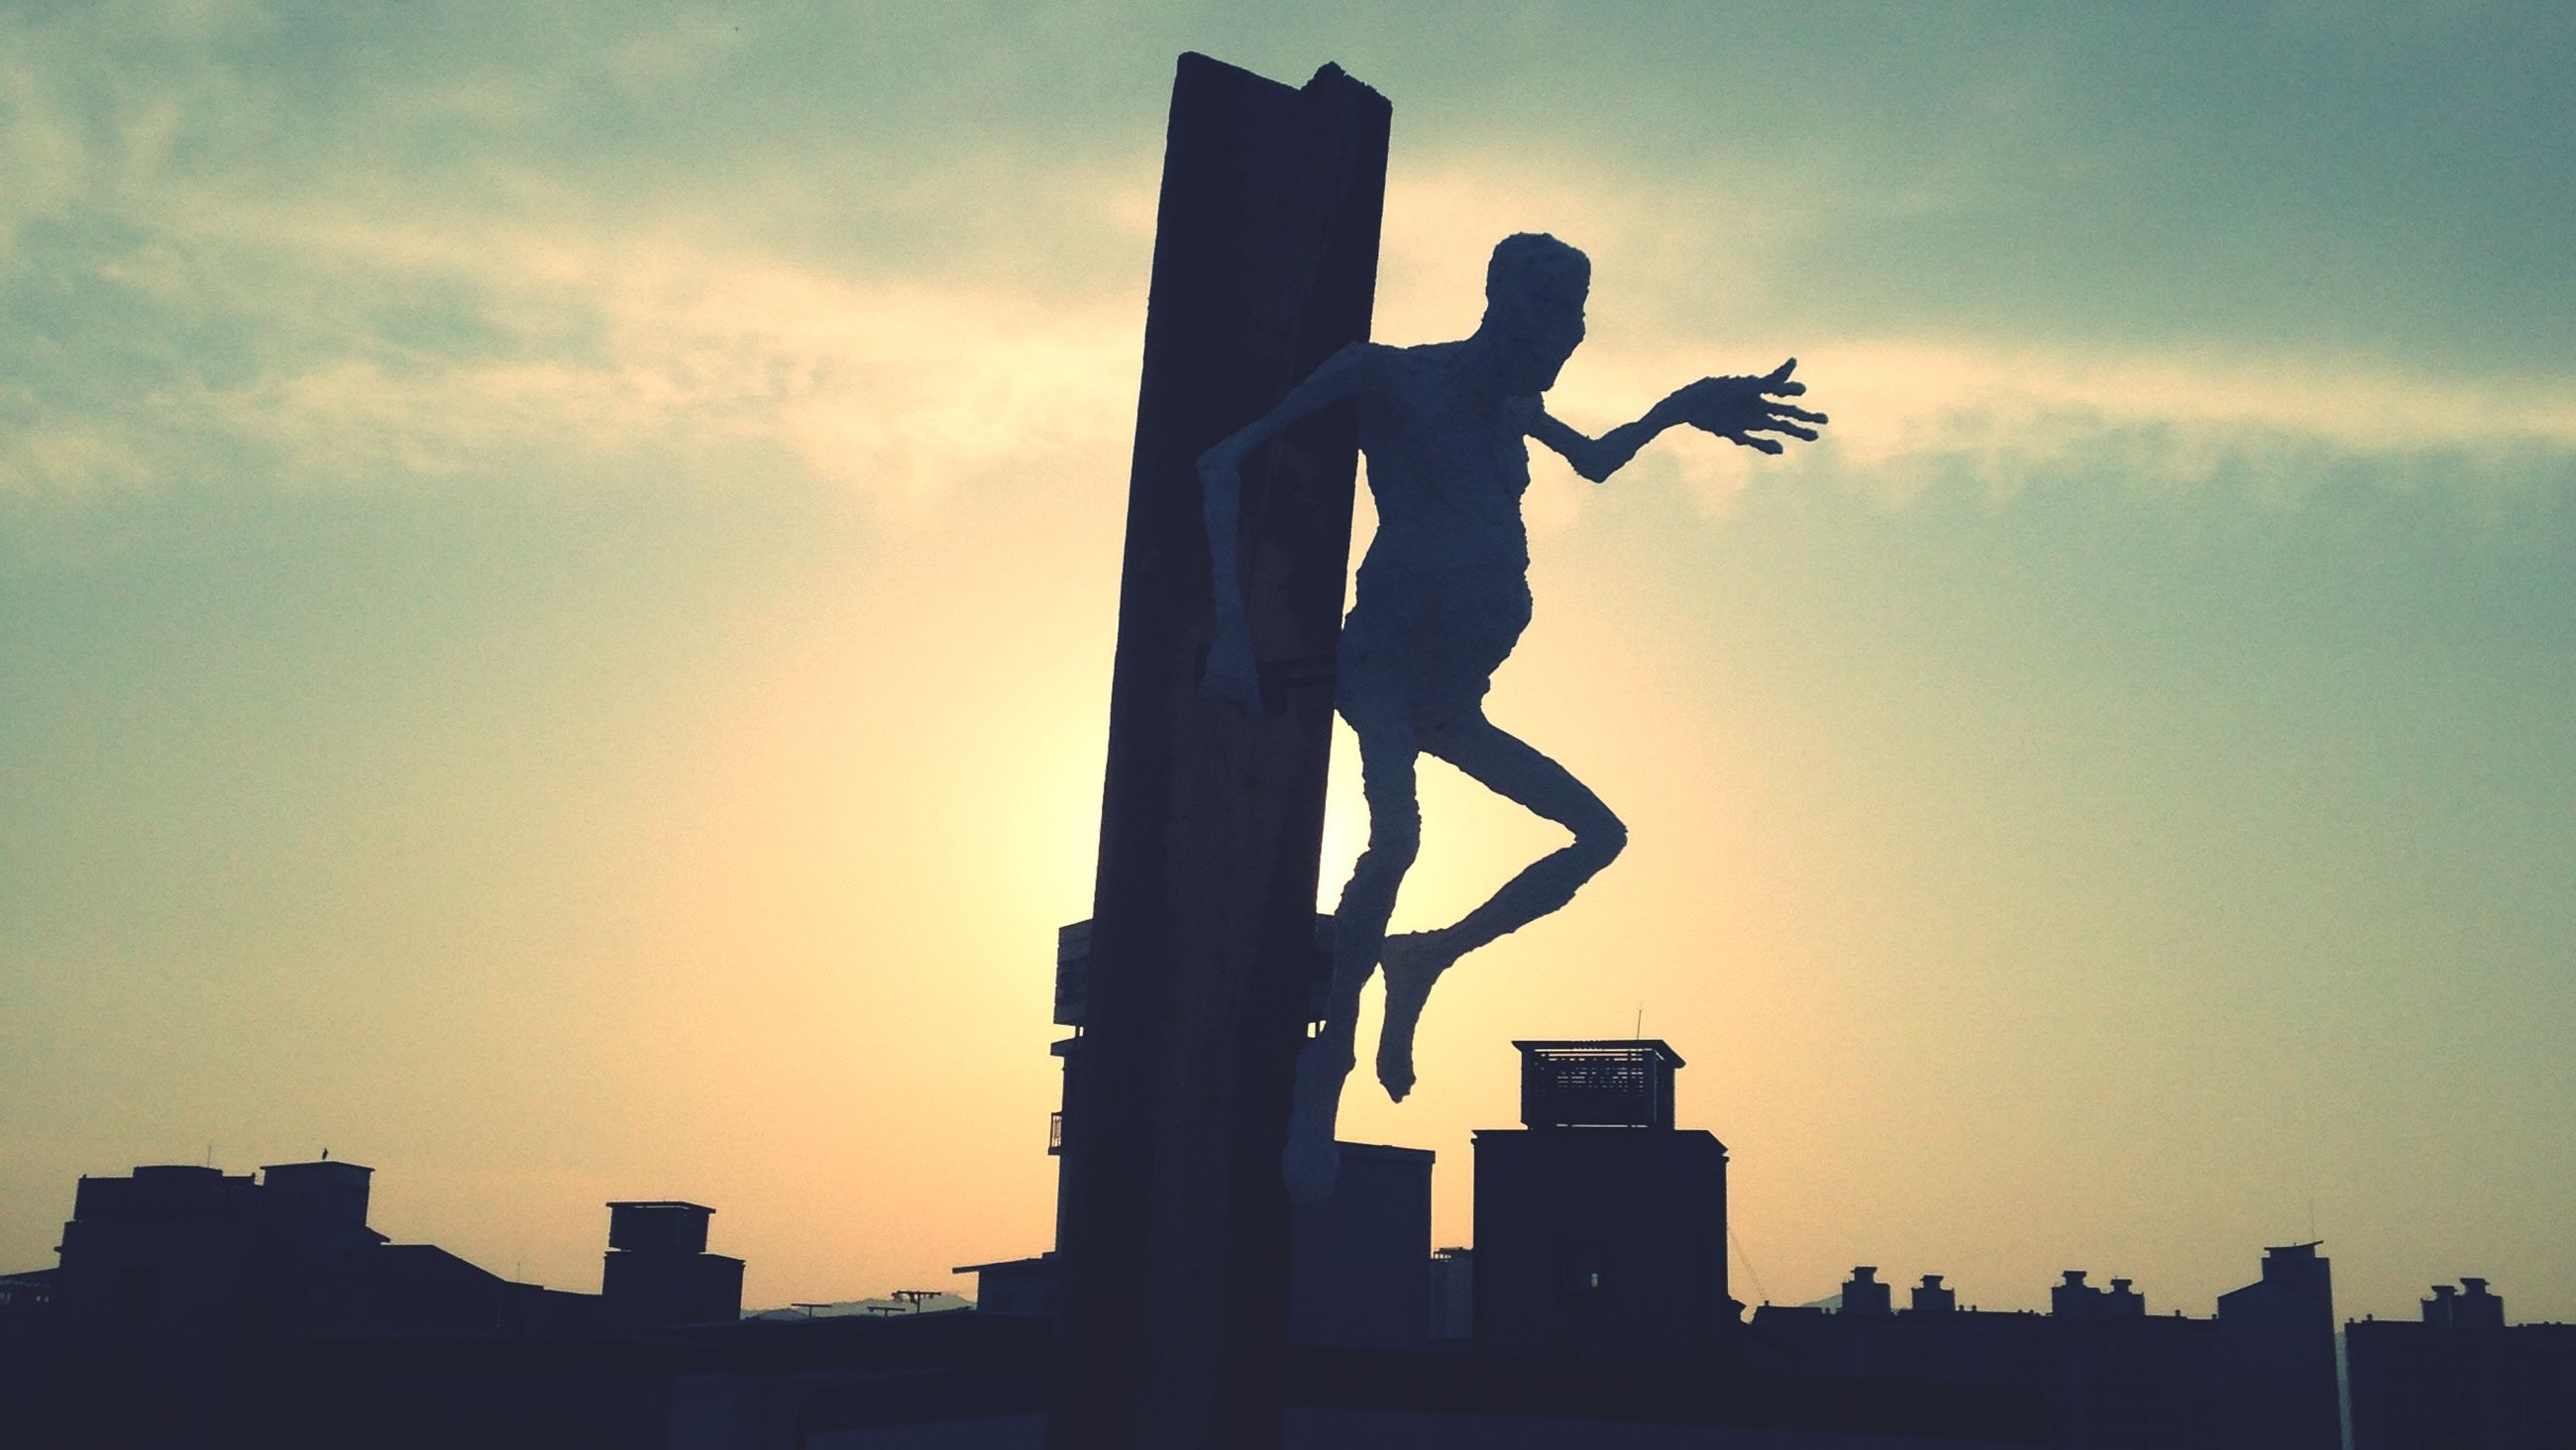 statue, sculpture, human representation, silhouette, low angle view, art, art and craft, creativity, sunset, sky, architecture, built structure, building exterior, outdoors, city, animal representation, dusk, no people